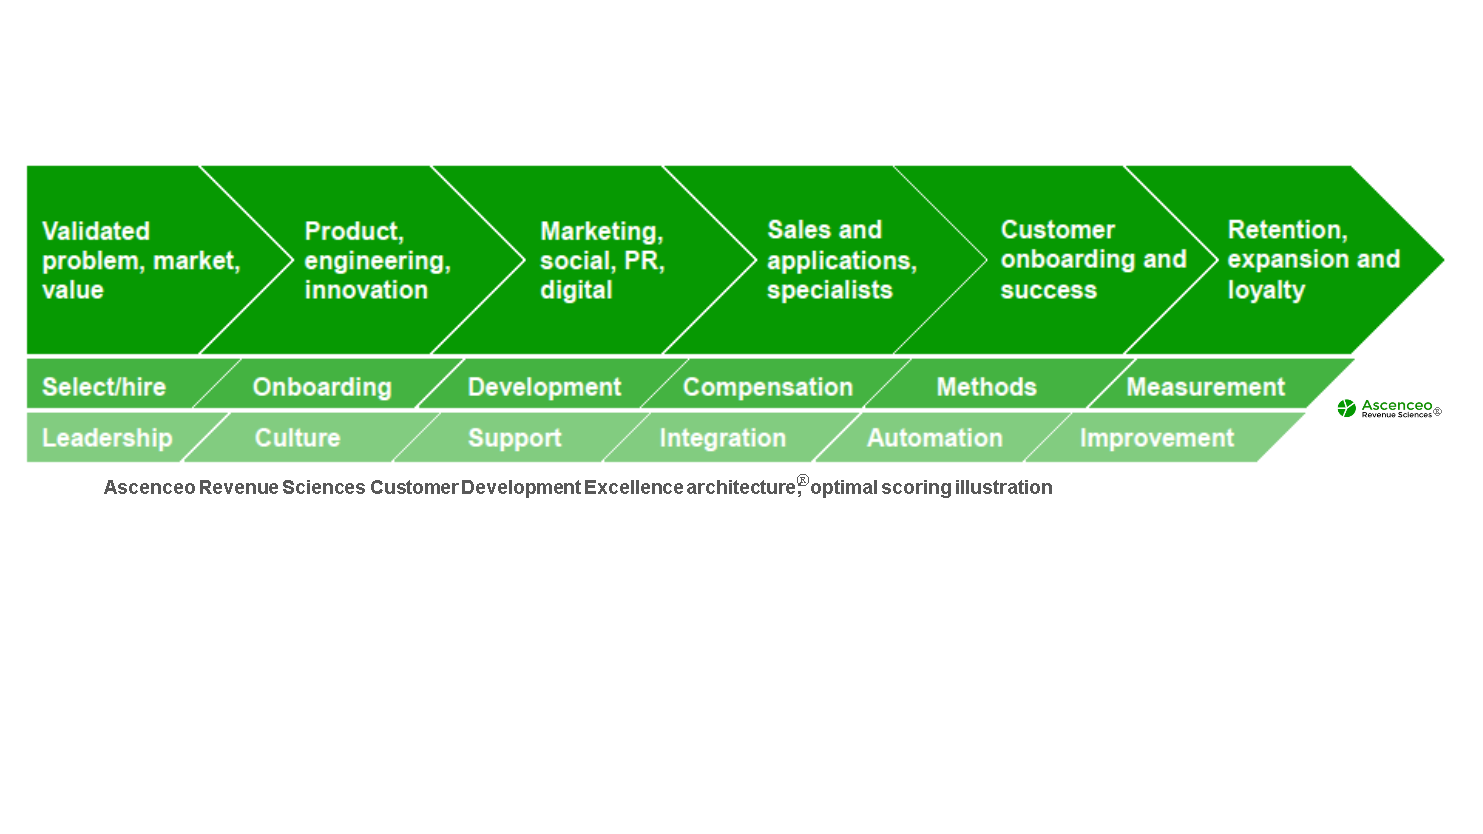 Ascenceo's Customer Development Excellence Architecture® (ACDEA). The ACDEA architecture evaluates the entire customer development process. It includes core processes like sales, marketing, customer onboarding and customer service. ACDEA provides a framework to evaluate, test, and score performance of each functional area in a specific company.  Our   science   pinpoints sources and gaps to higher customer development and sales revenue performance.